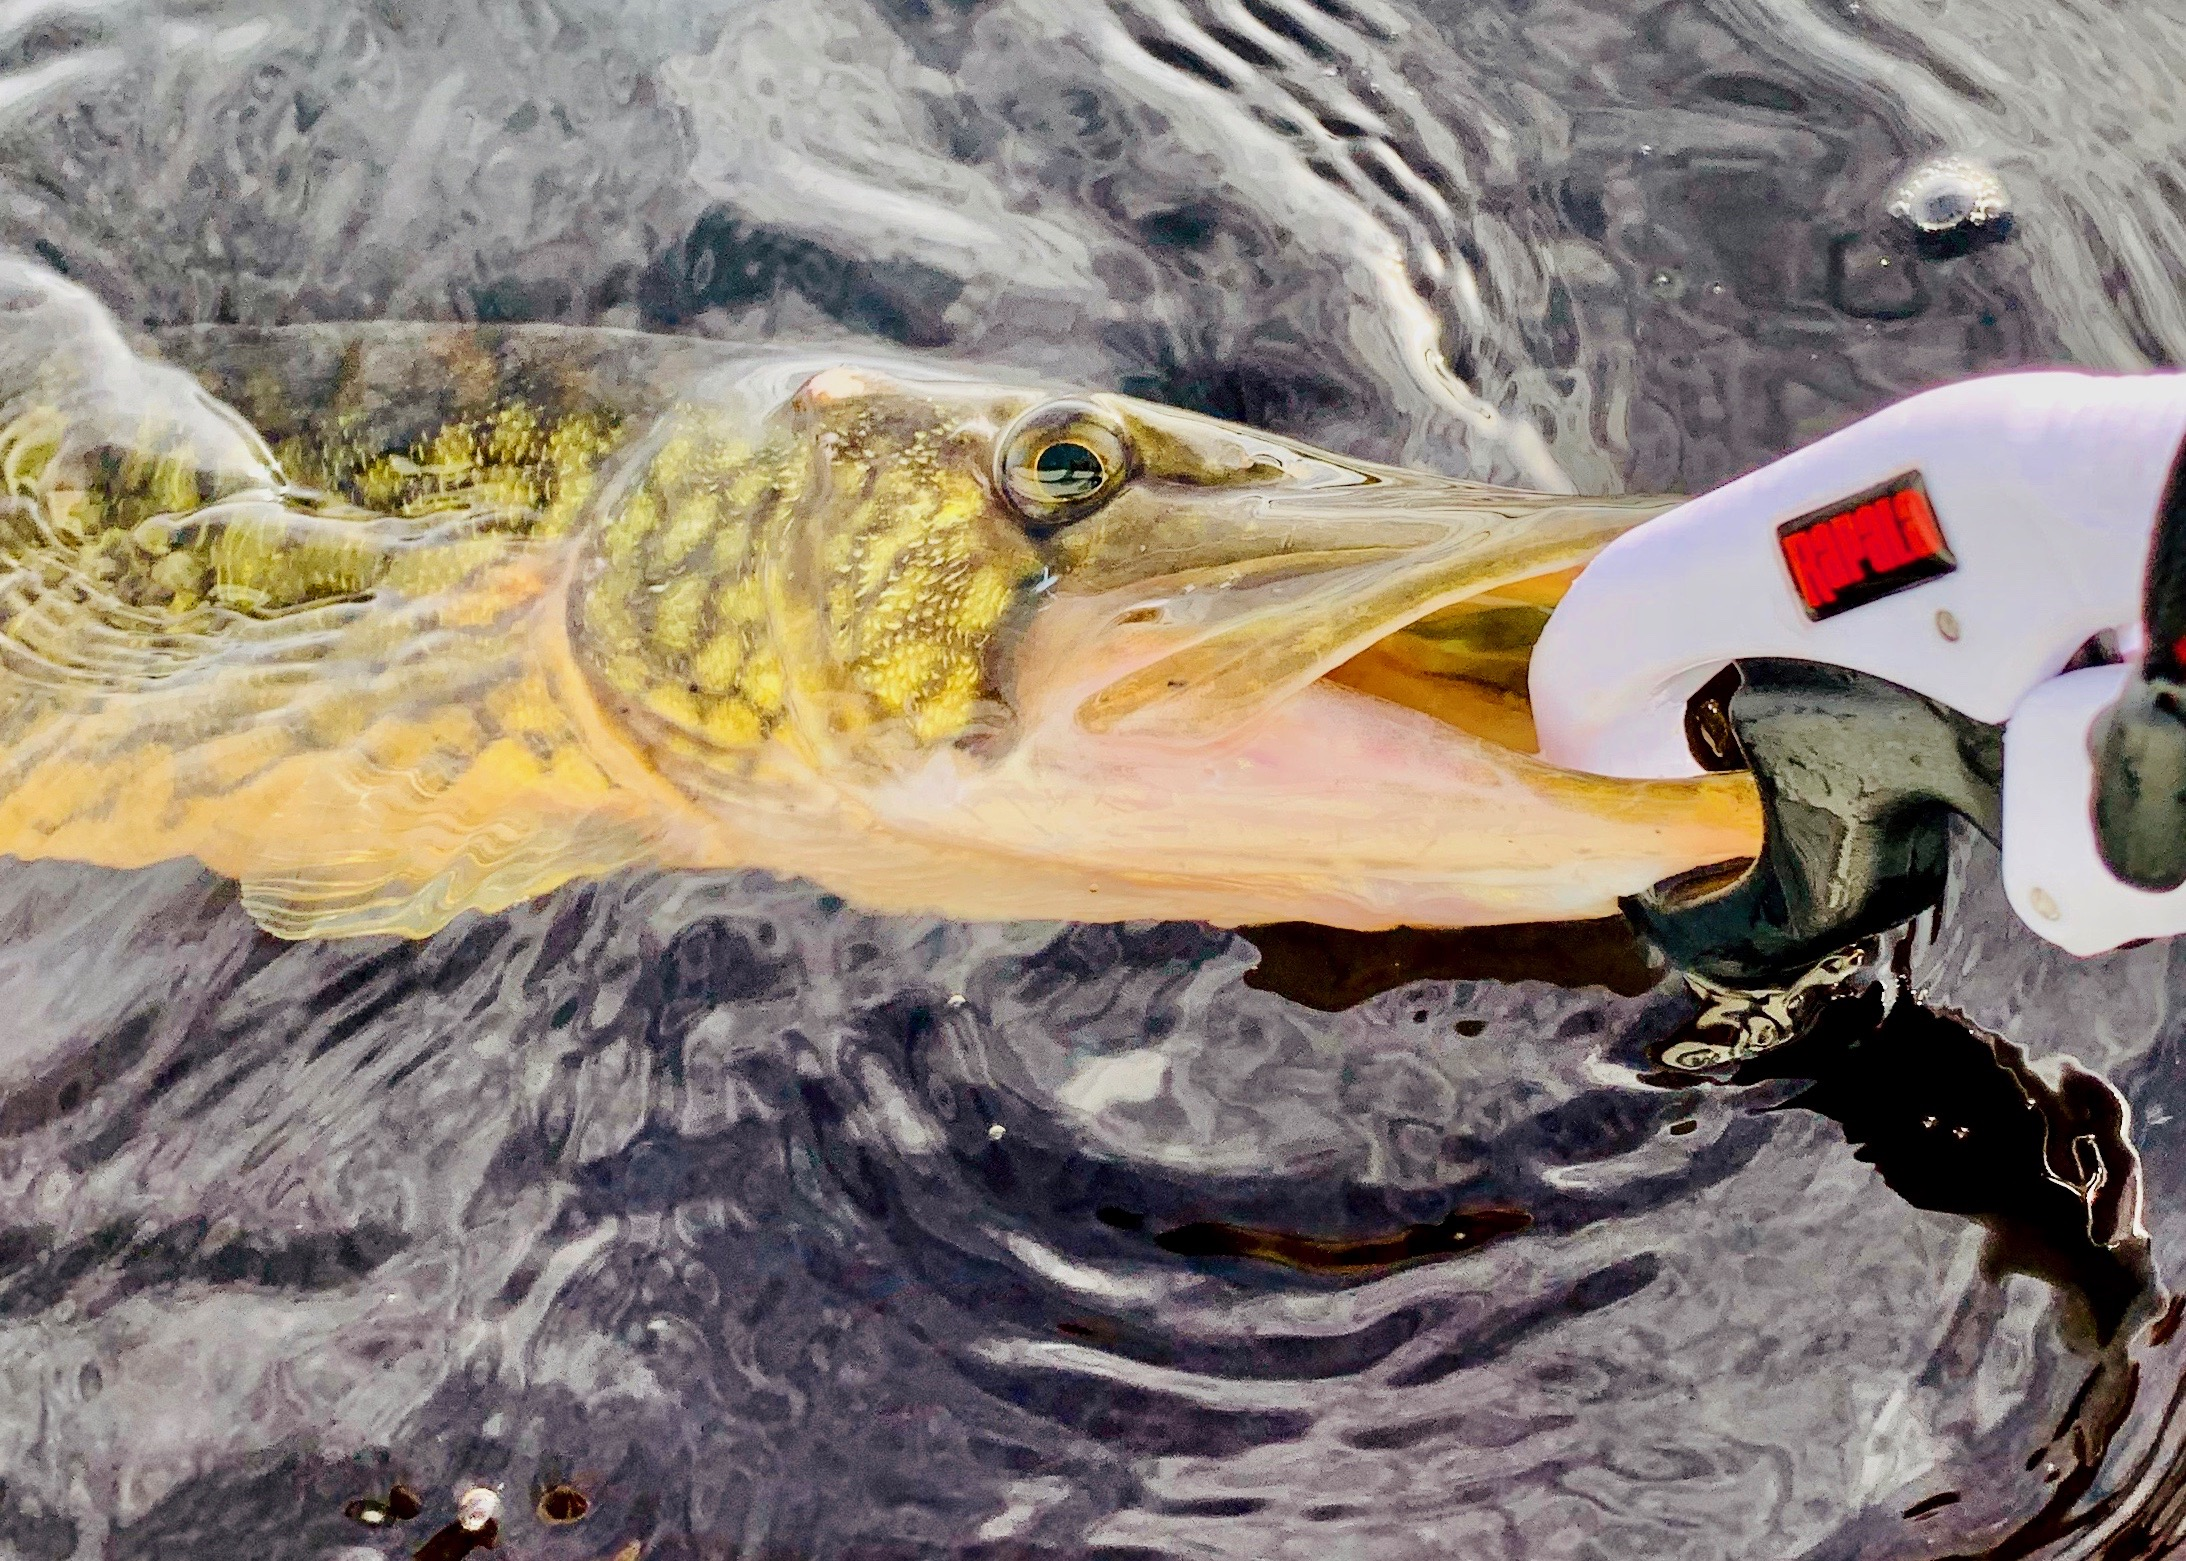 The use of fish grips will protect you from the pickerel's sharp teeth and makes the un-hooking procedure easier on the fish.